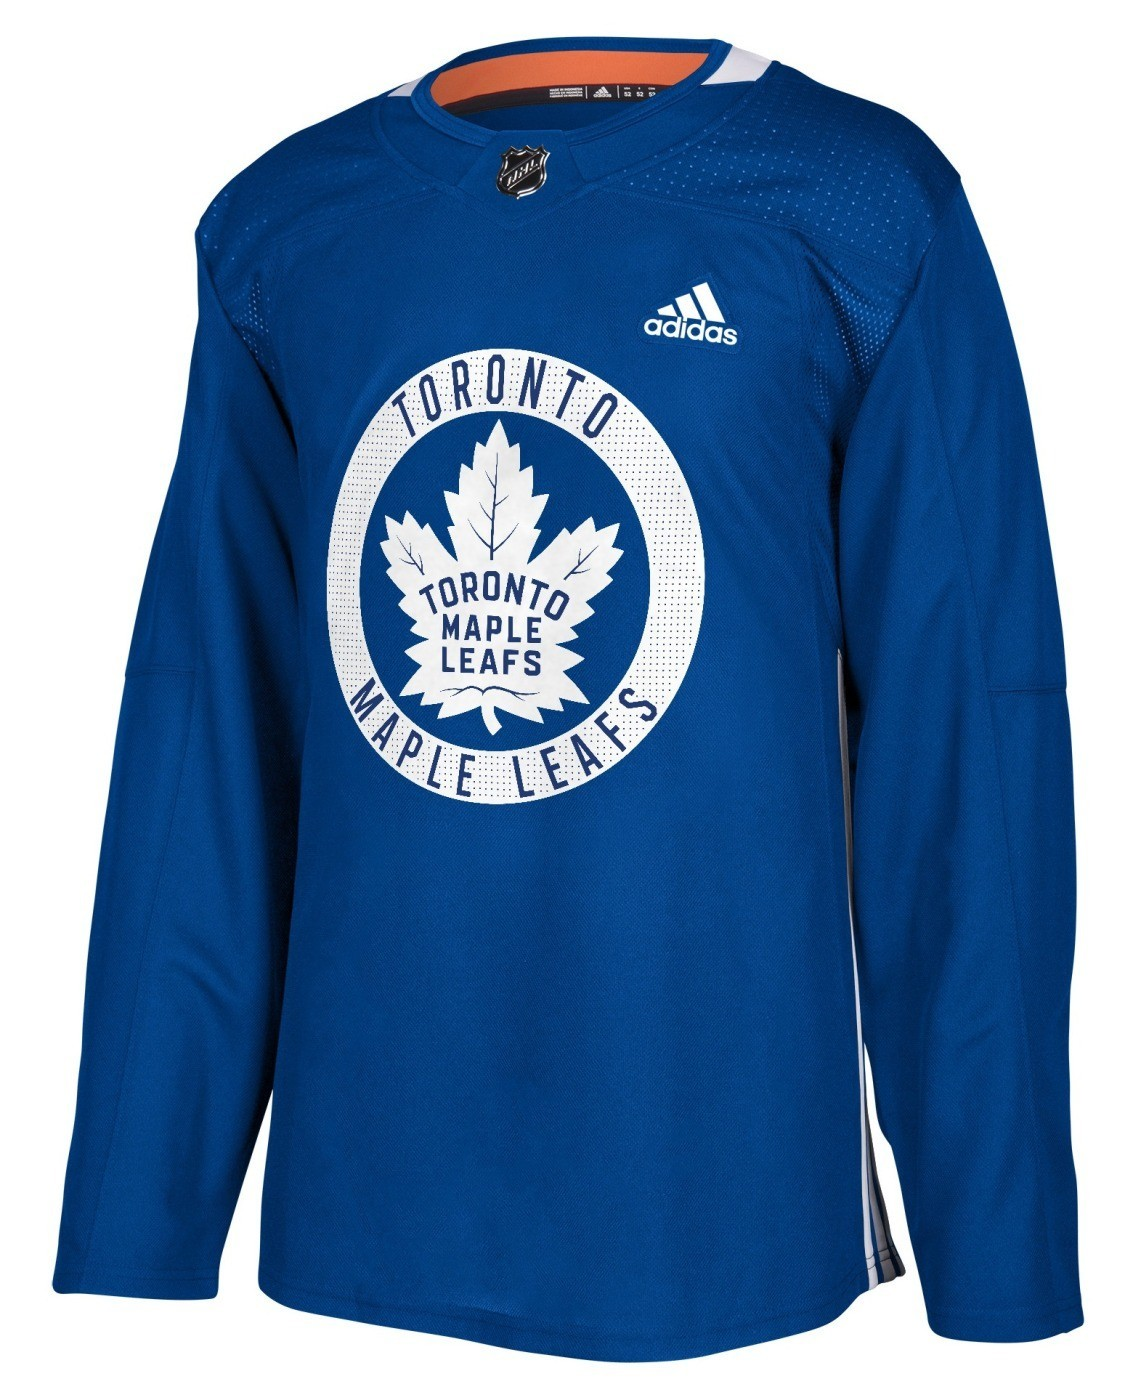 Adidas Toronto Maple Leafs Authentic Pro Climalite Hoodie